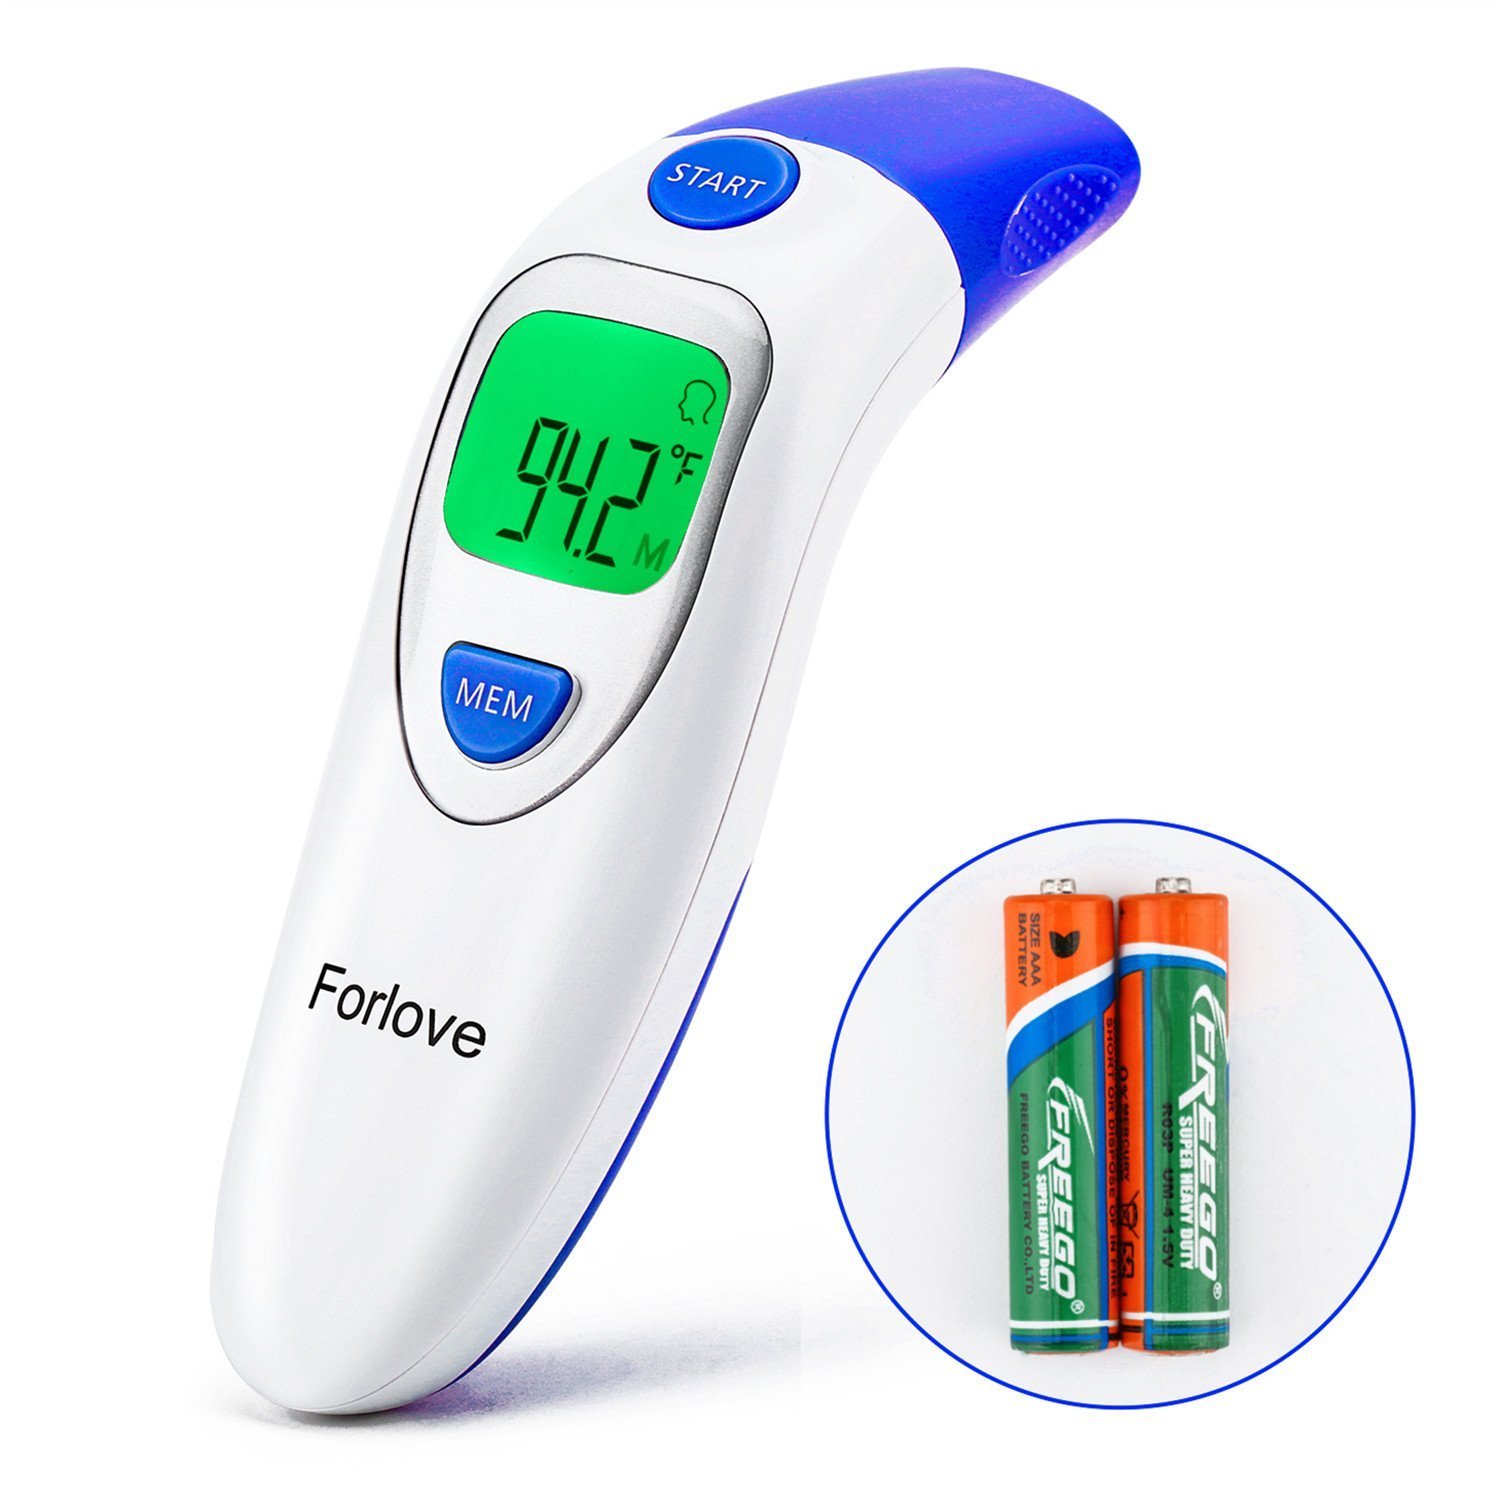 Infrared Thermometer, Forlove Digital Ear and Forehead Thermometer Professional 4 in 1 Suitable for Baby, Kids, Adults - FDA Approved (Dark Blue)